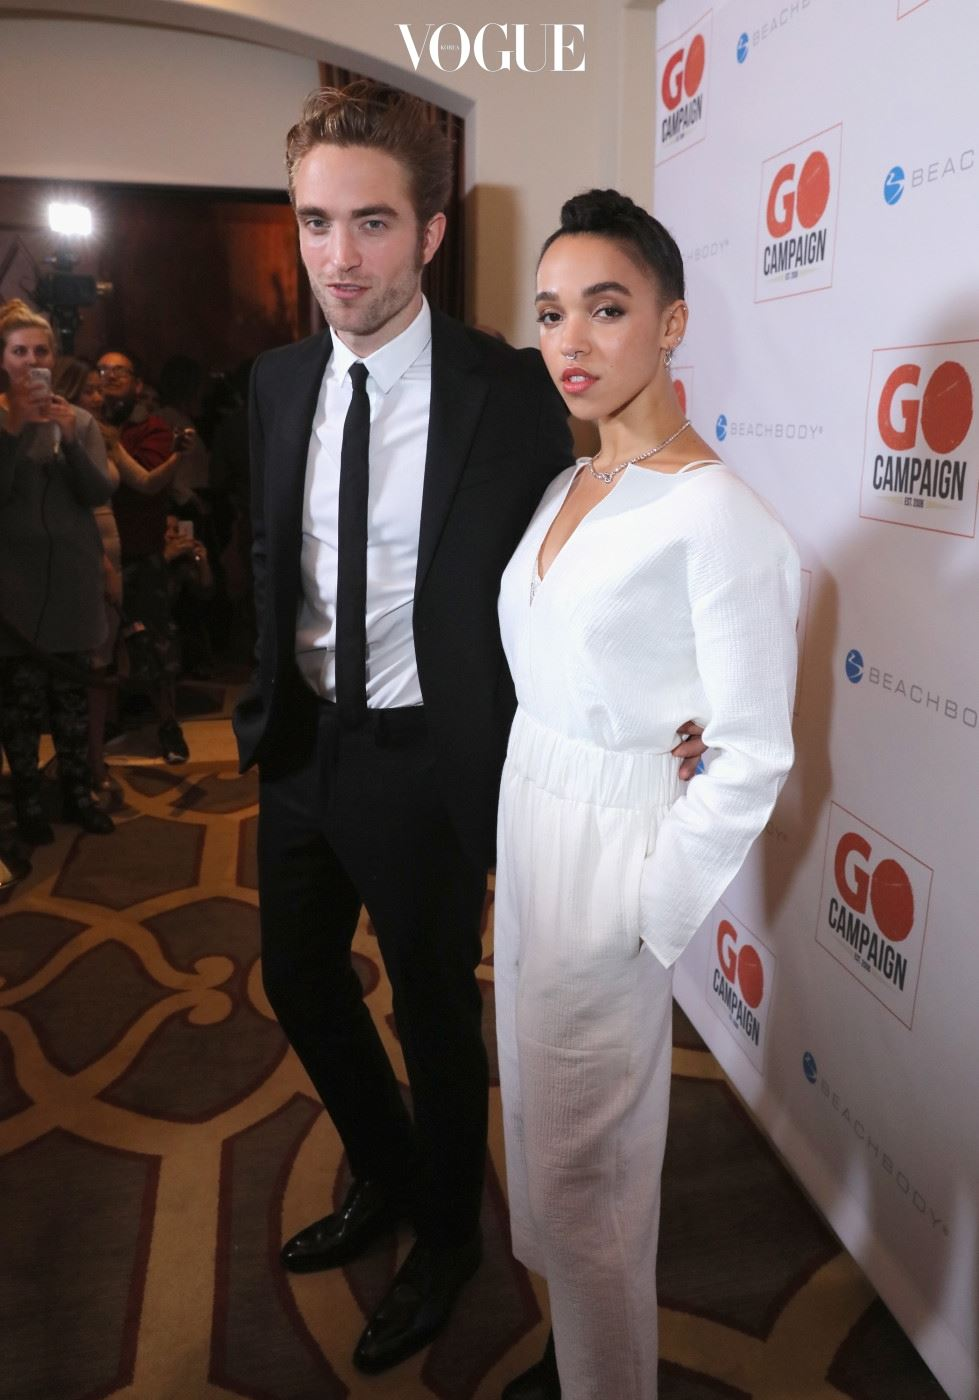 BEVERLY HILLS, CA - NOVEMBER 12:  Actor Robert Pattinson (L) and FKA twigs attend the 8th Annual GO Campaign Gala at Montage Beverly Hills on November 12, 2015 in Beverly Hills, California.  (Photo by Mark Davis/Getty Images)